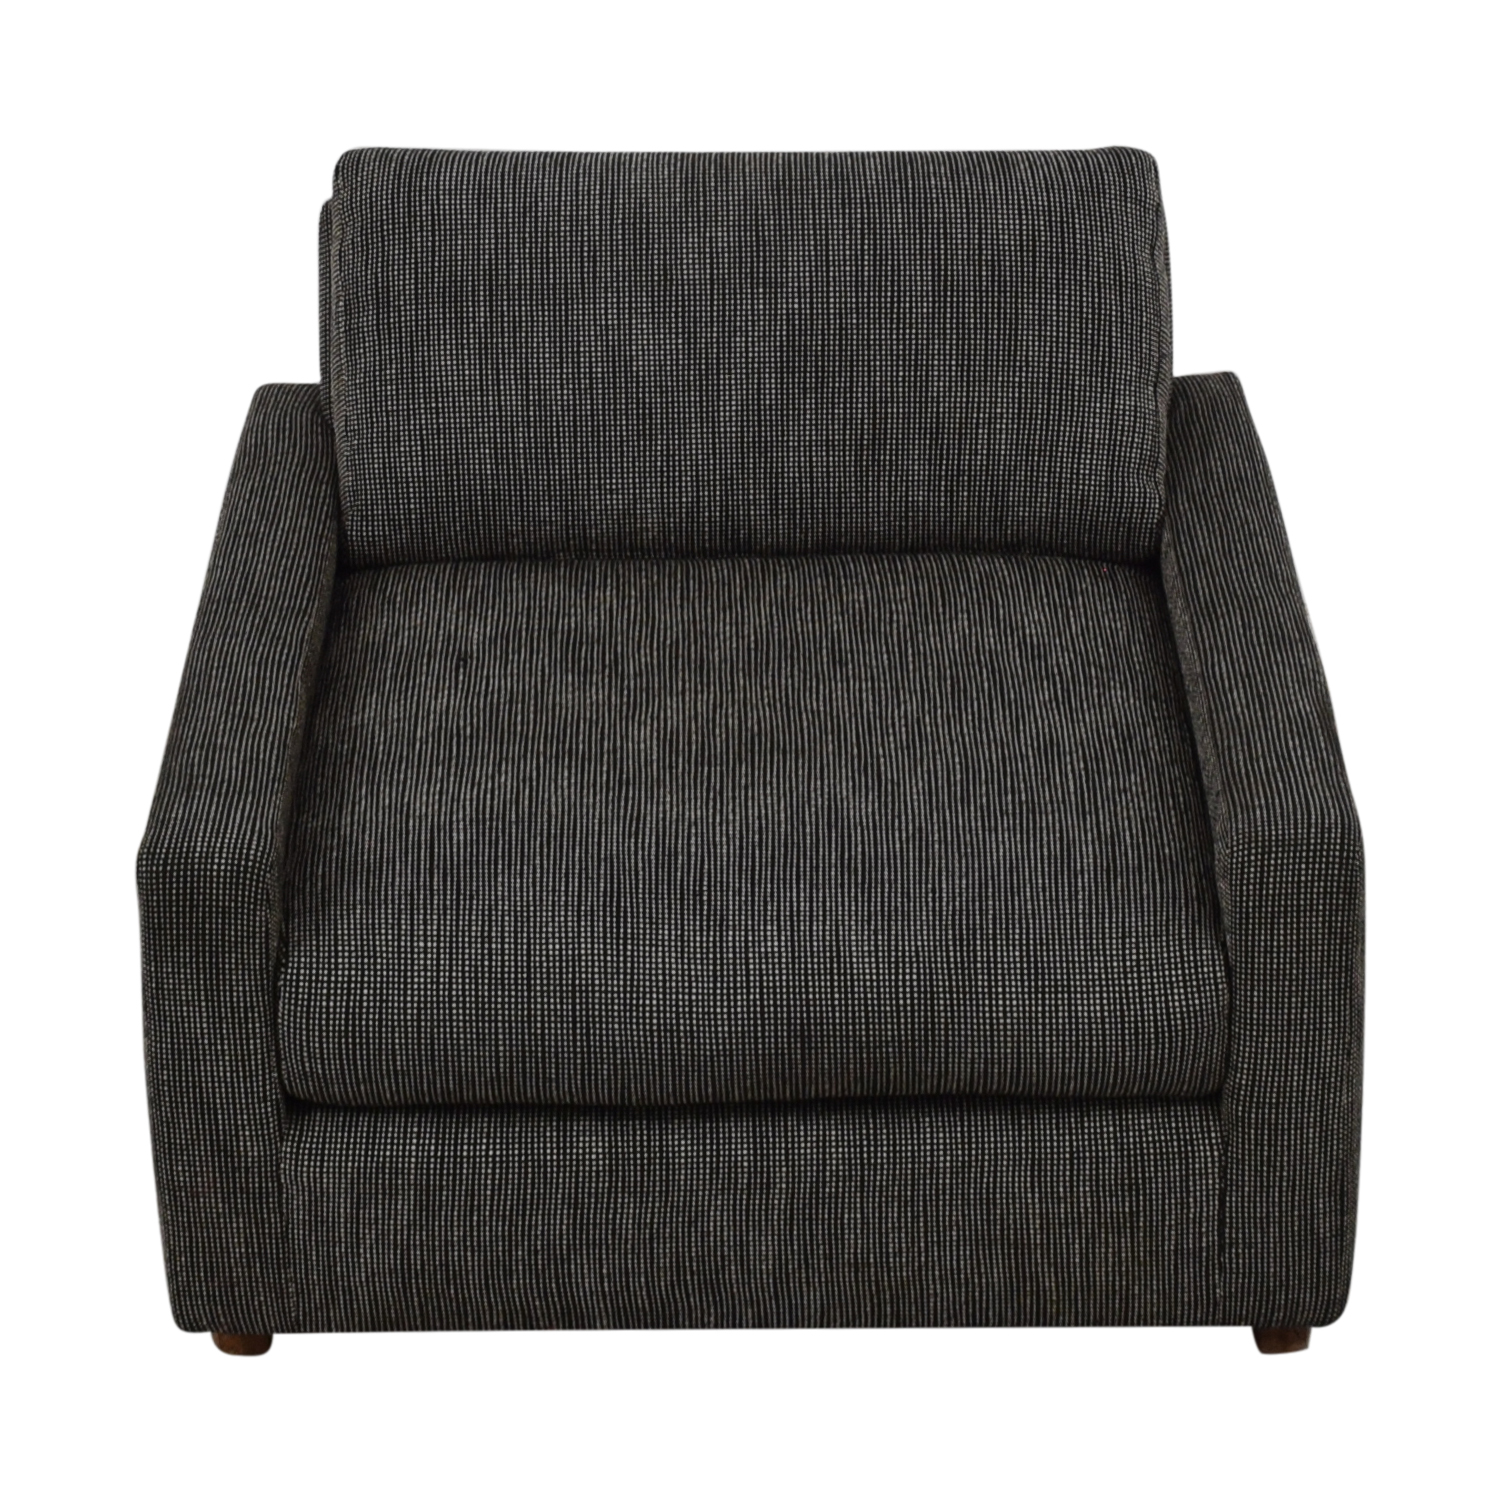 72% OFF   Oversized Accent Chair / Chairs